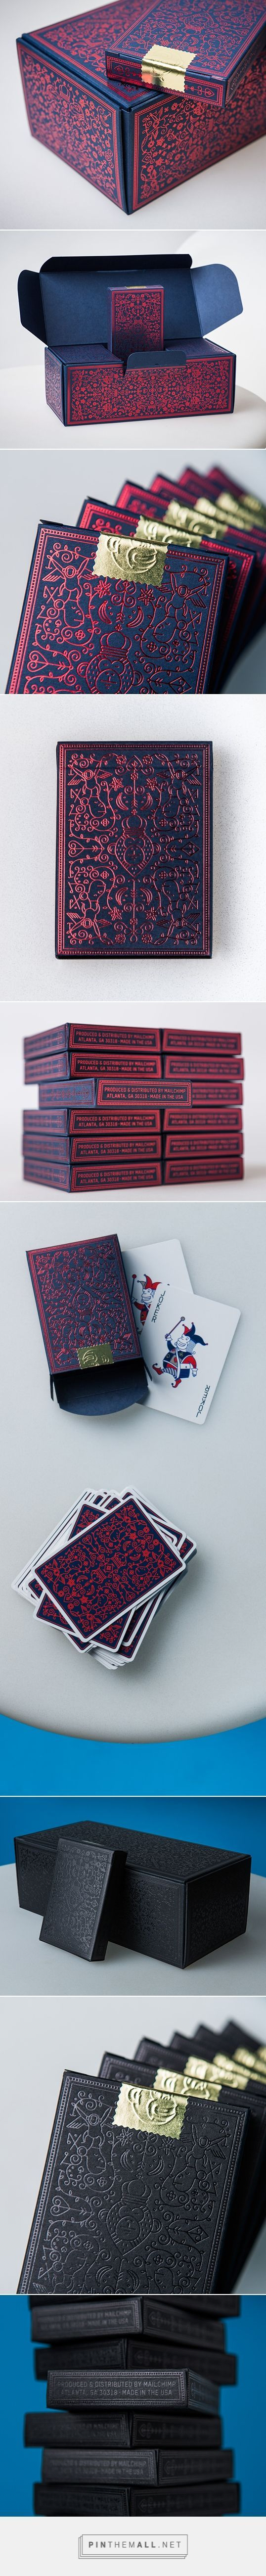 MailChimp Playing Cards